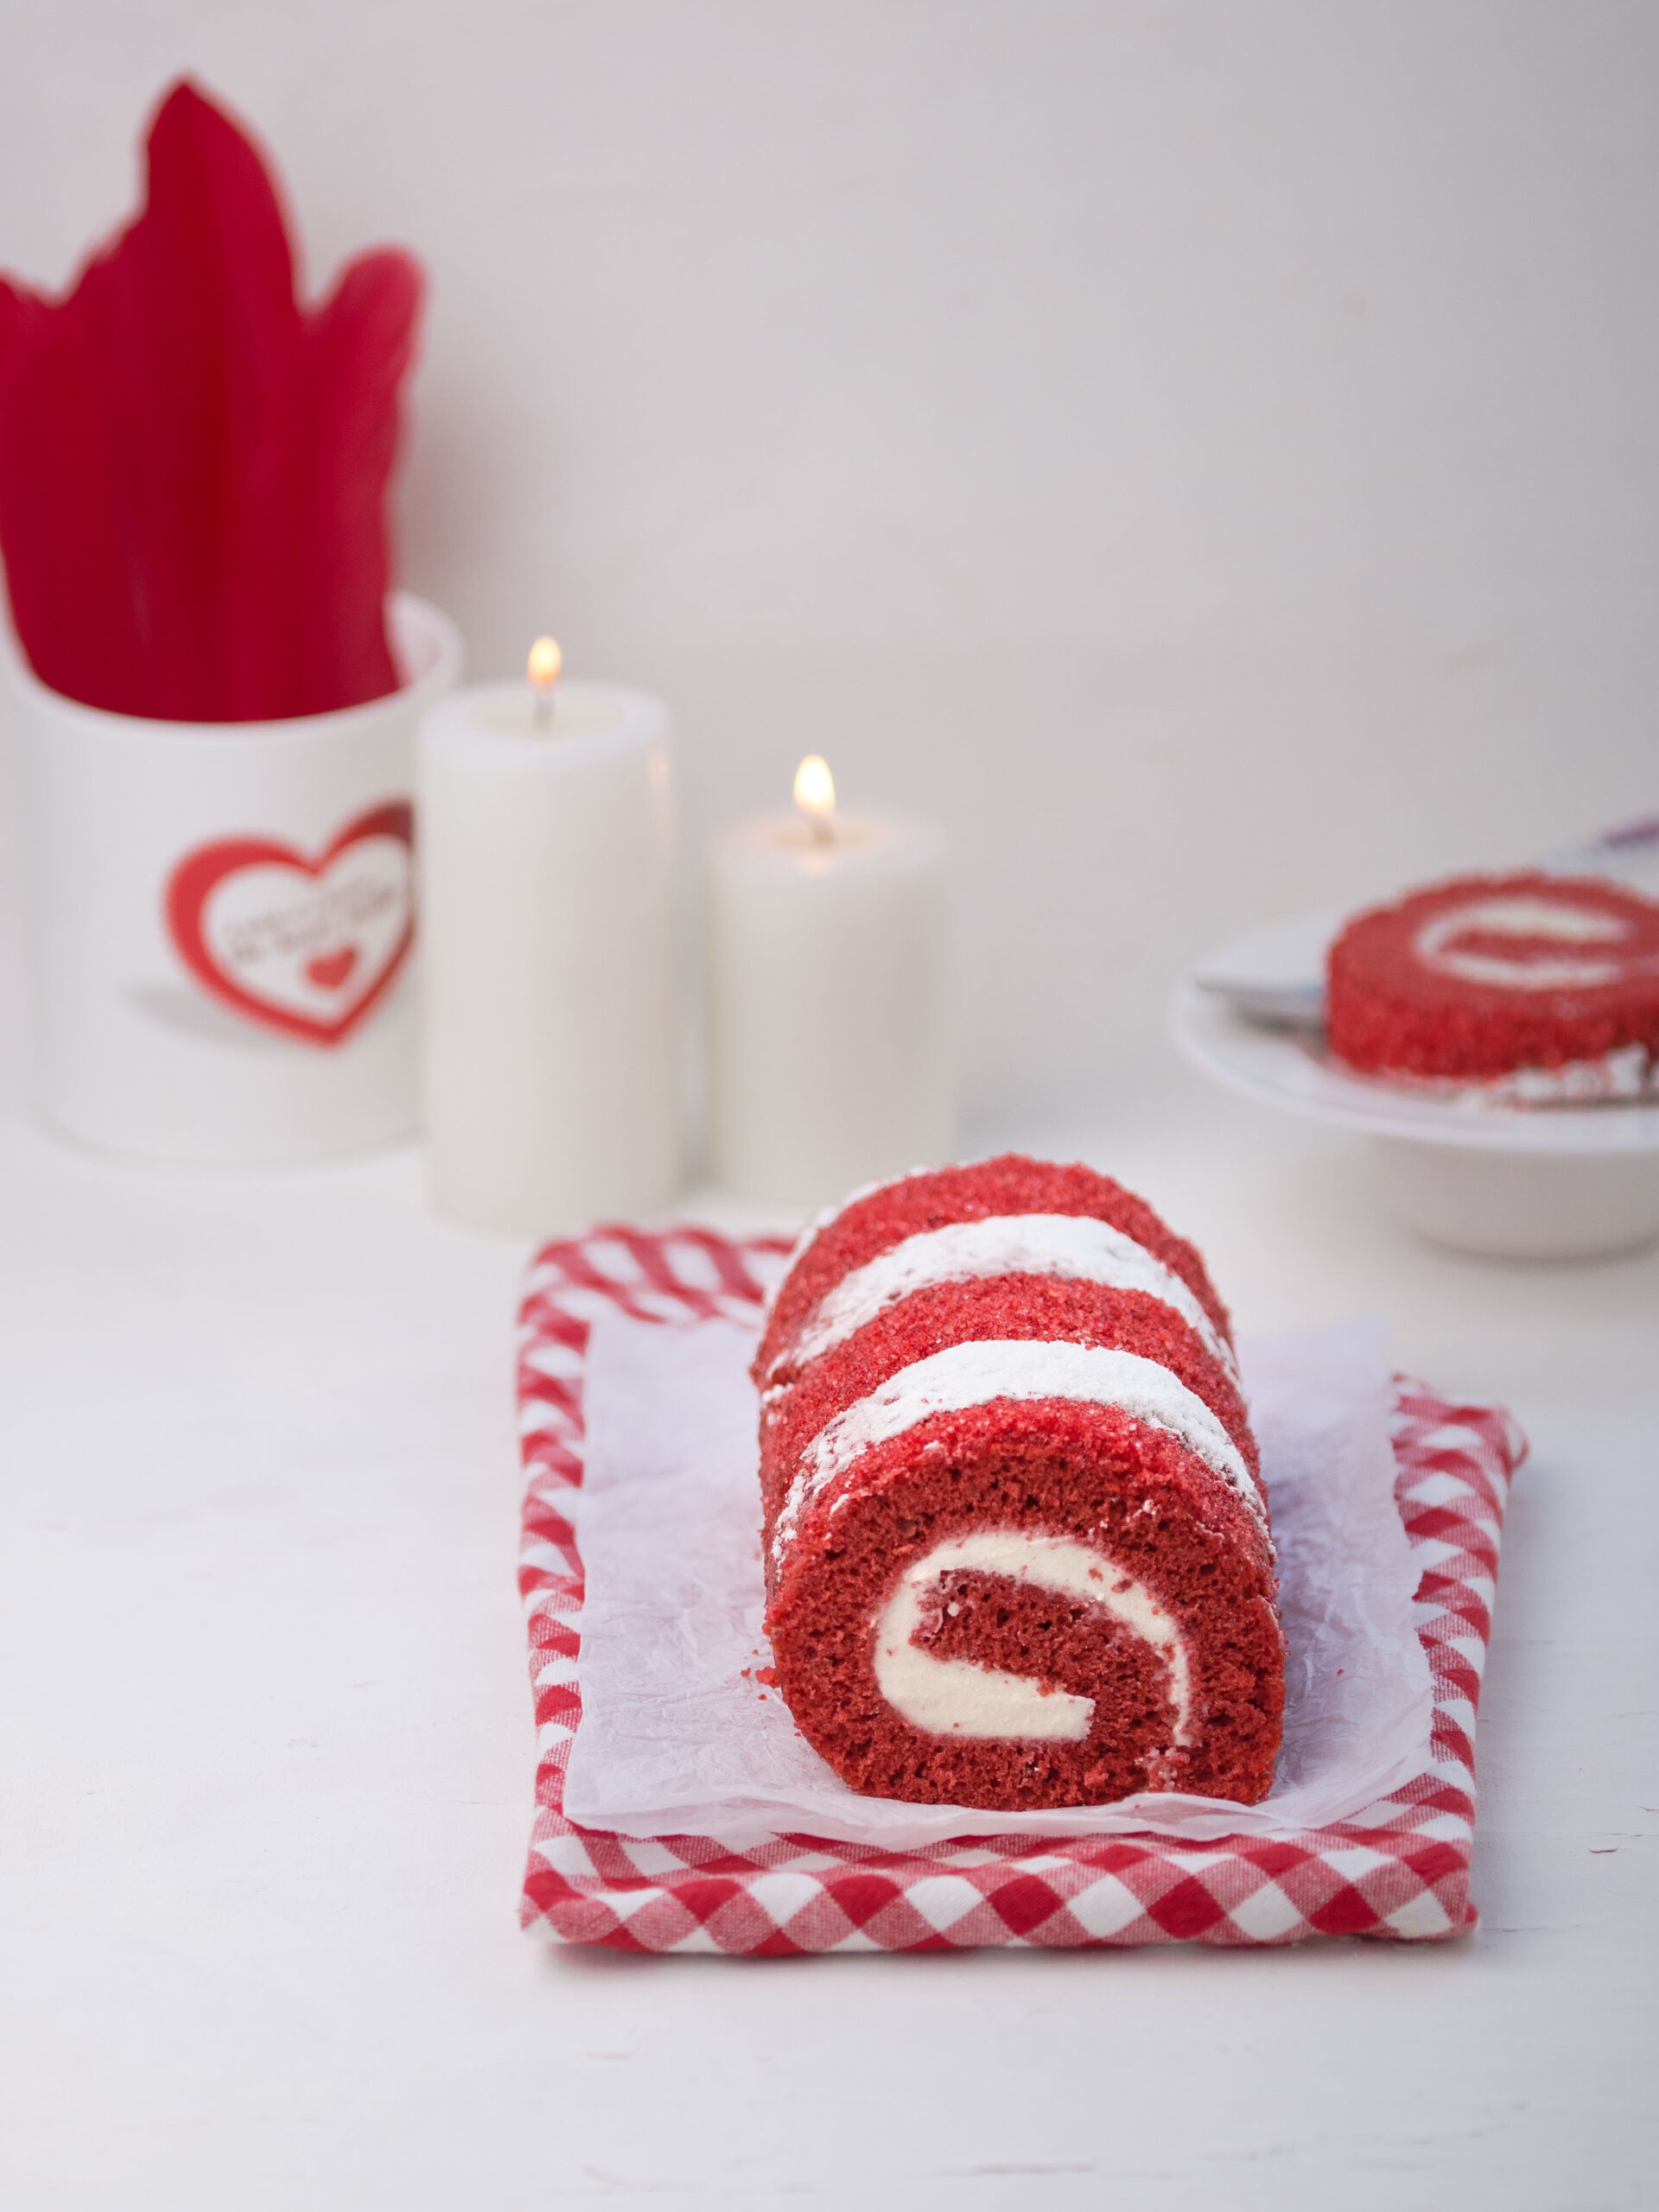 red velvet roll cake - swiss roll